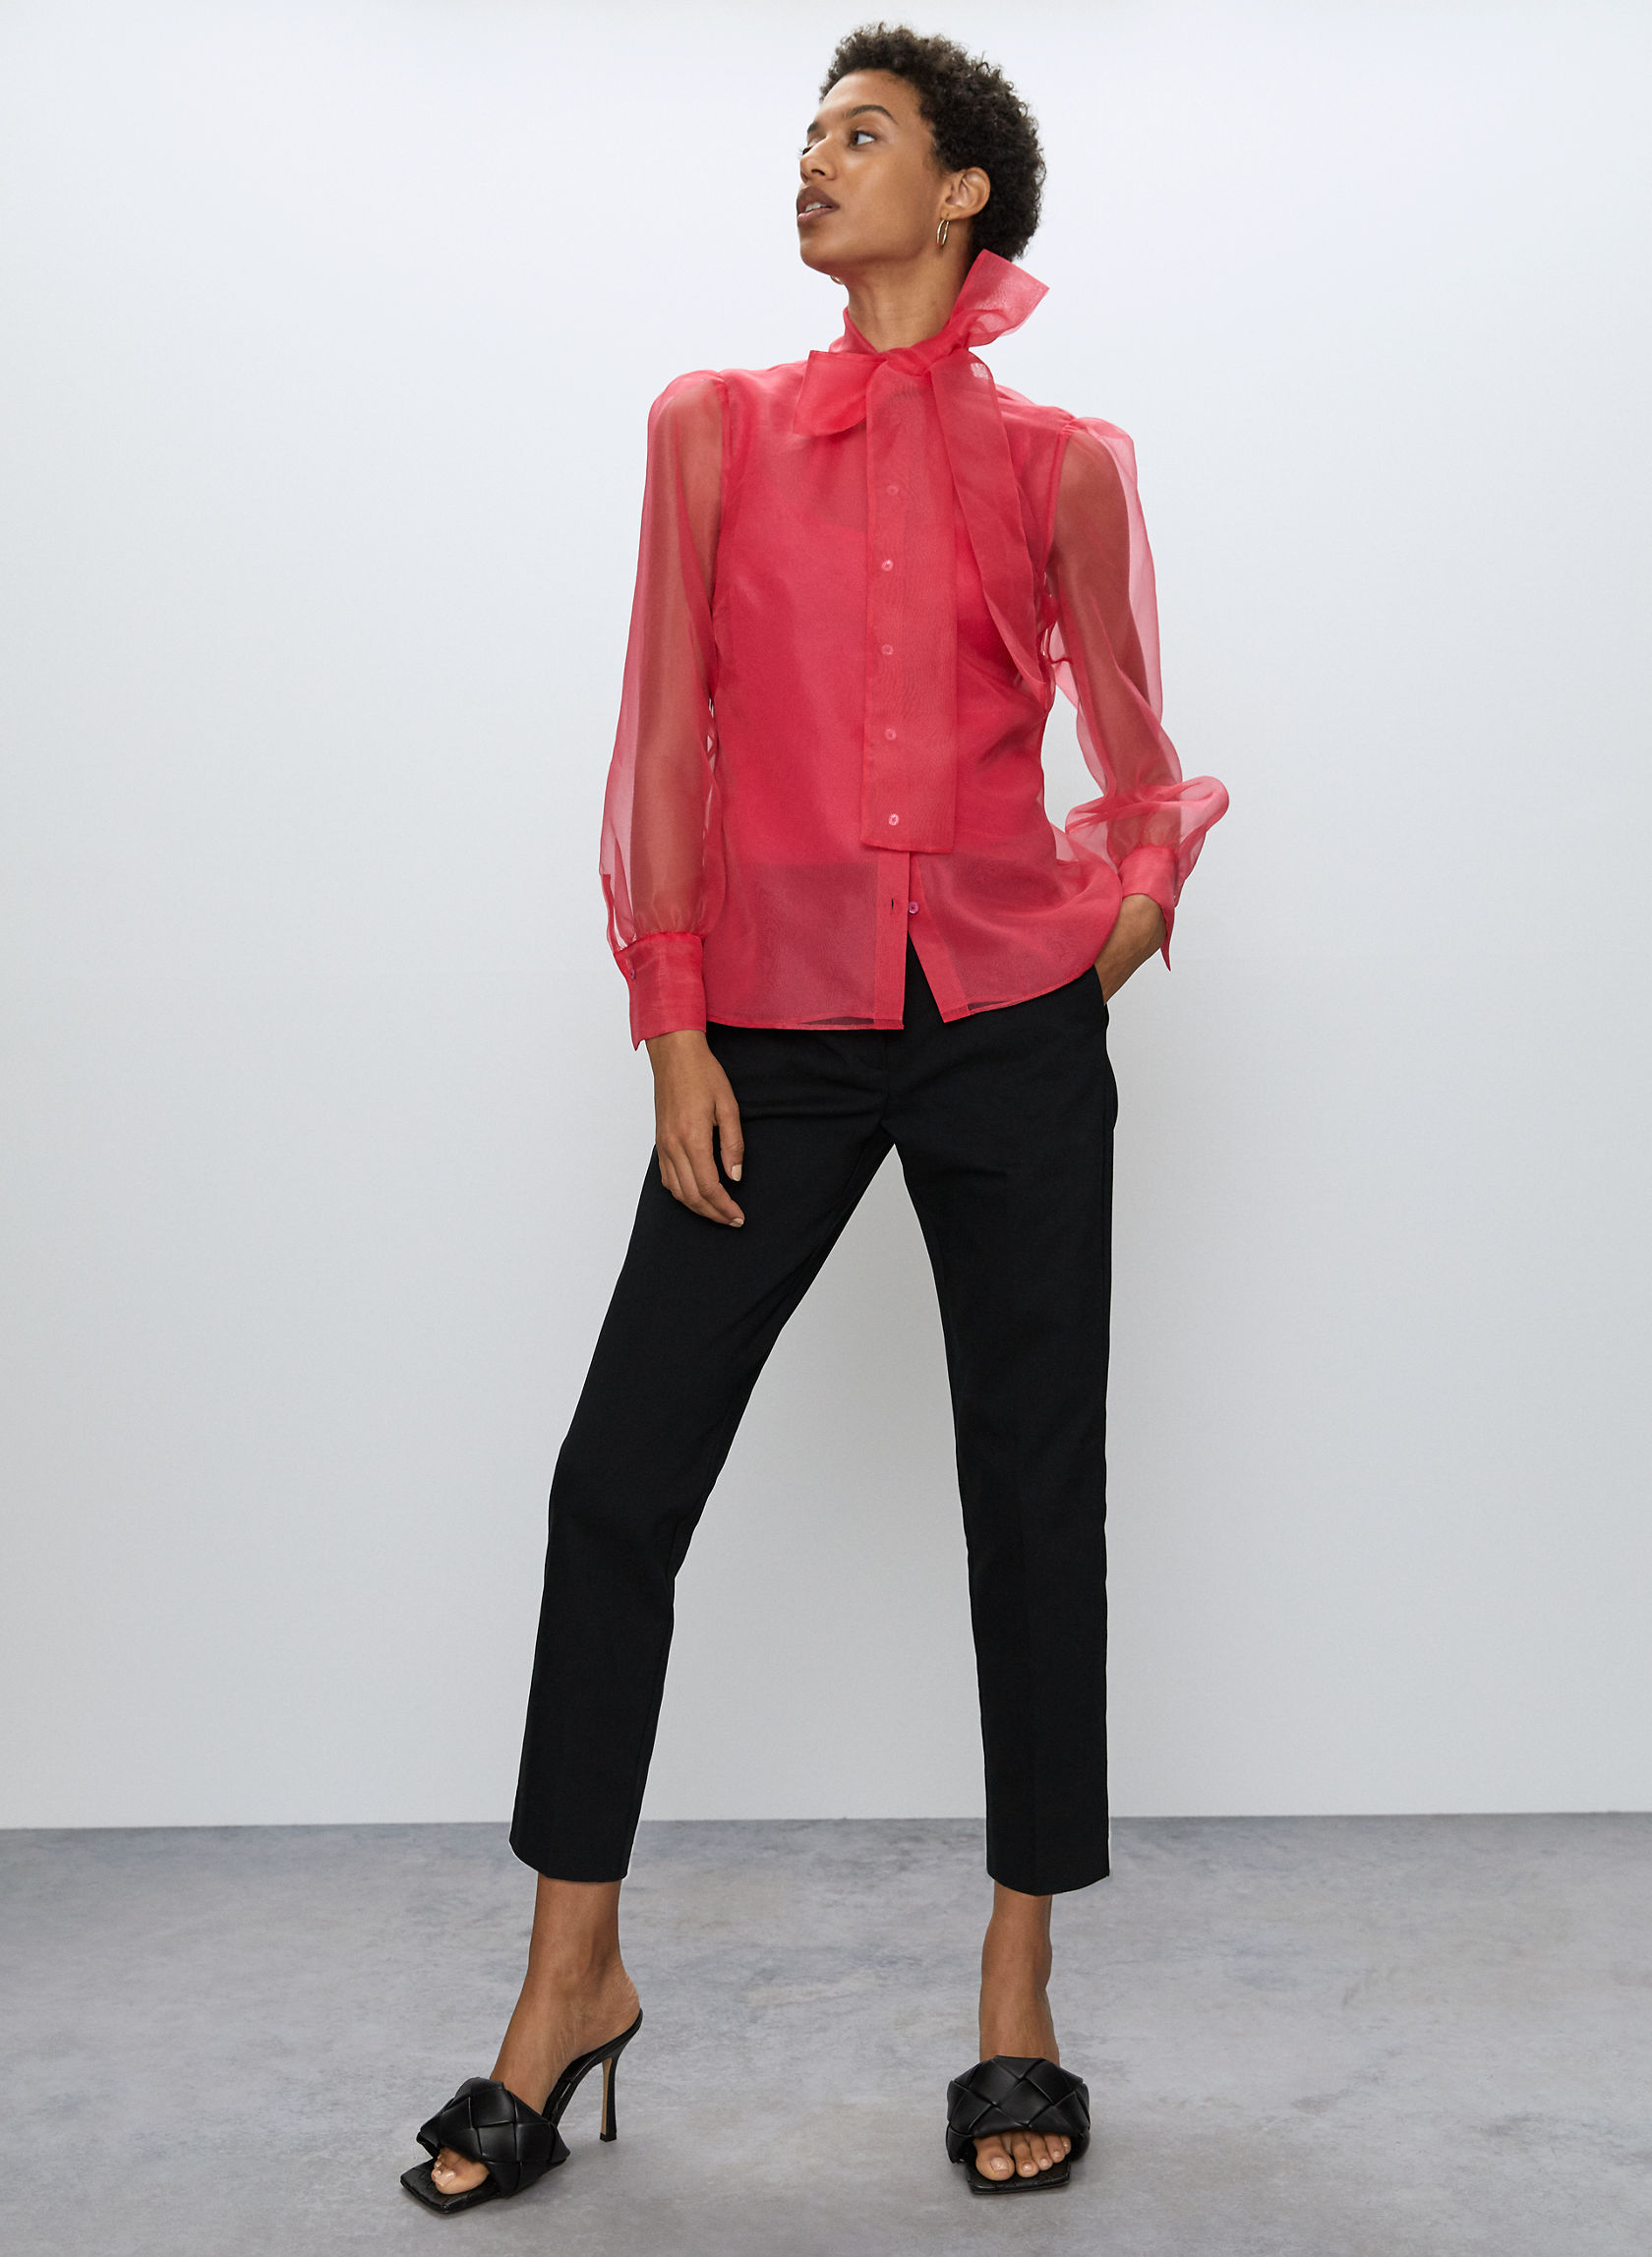 BOW BLOUSE - Long-sleeve, tie neck blouse